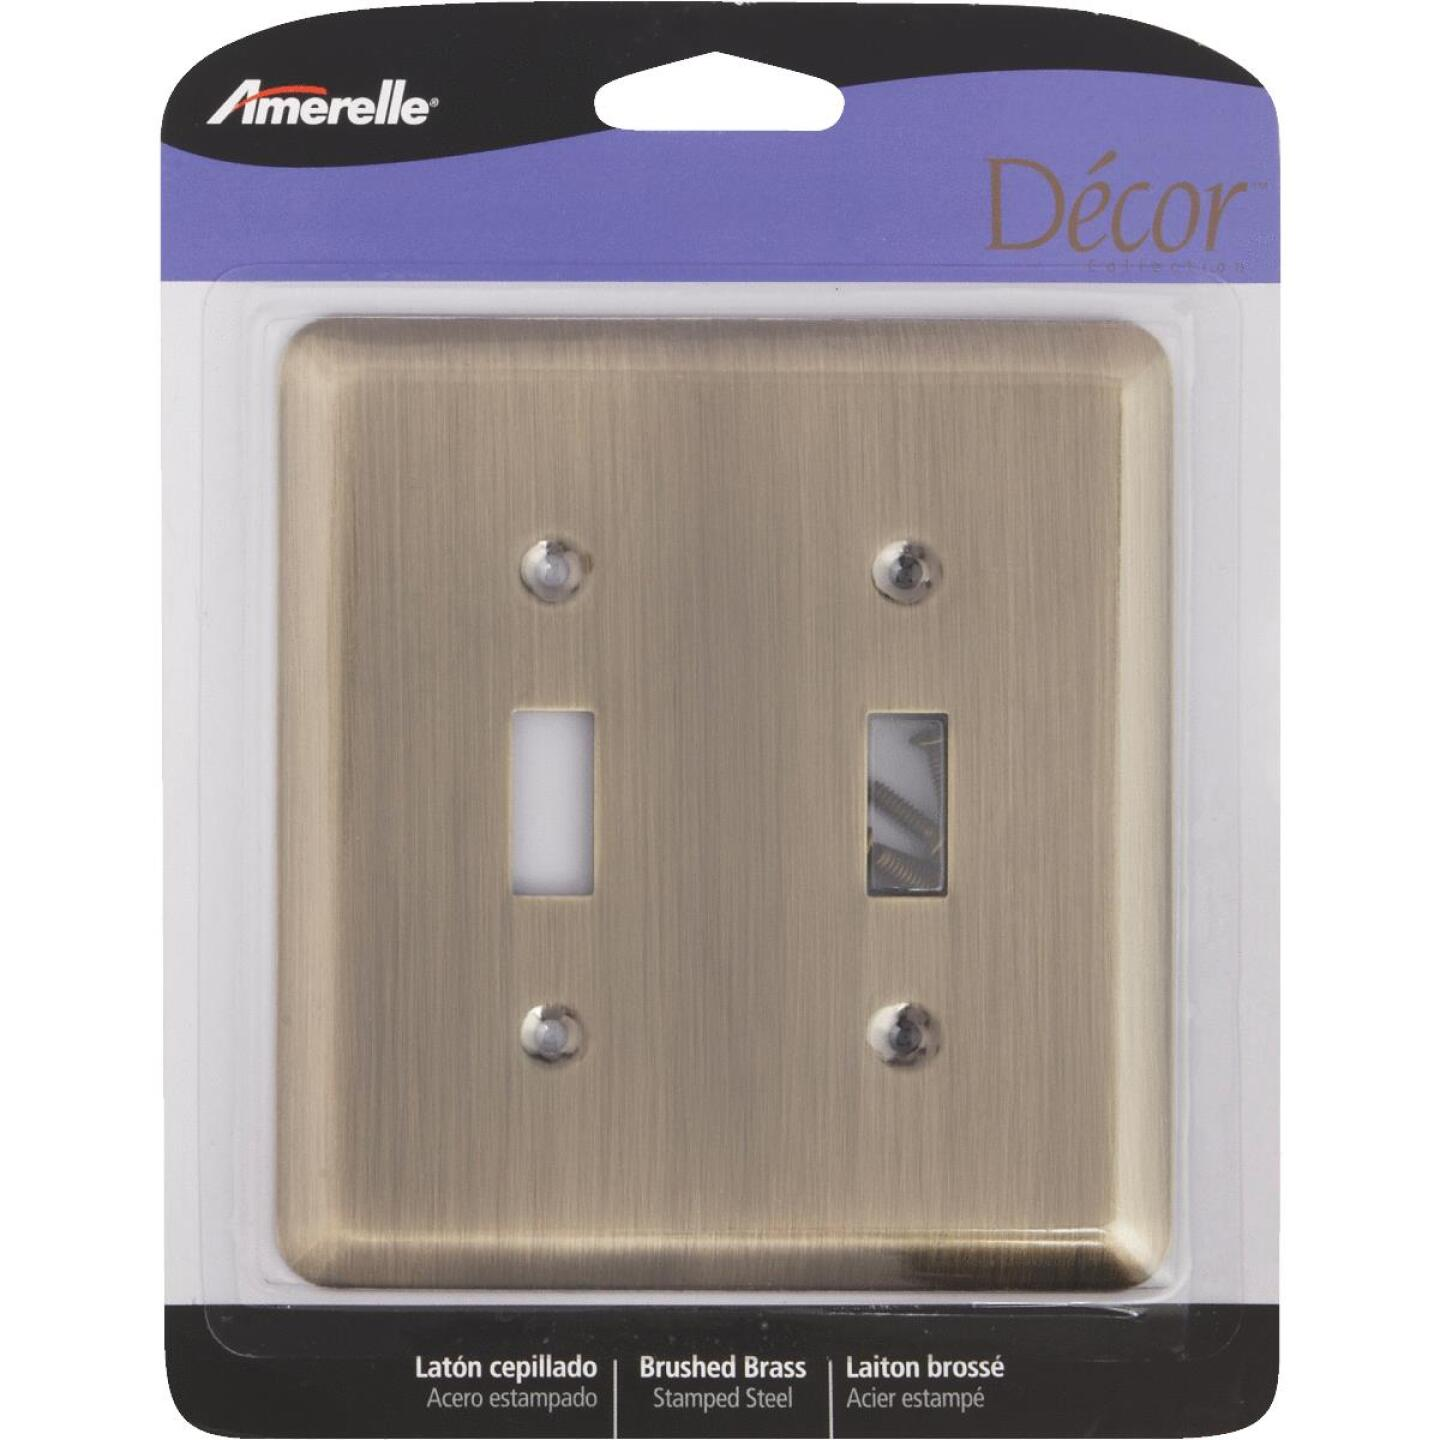 Amerelle 2-Gang Stamped Steel Toggle Switch Wall Plate, Brushed Brass Image 2